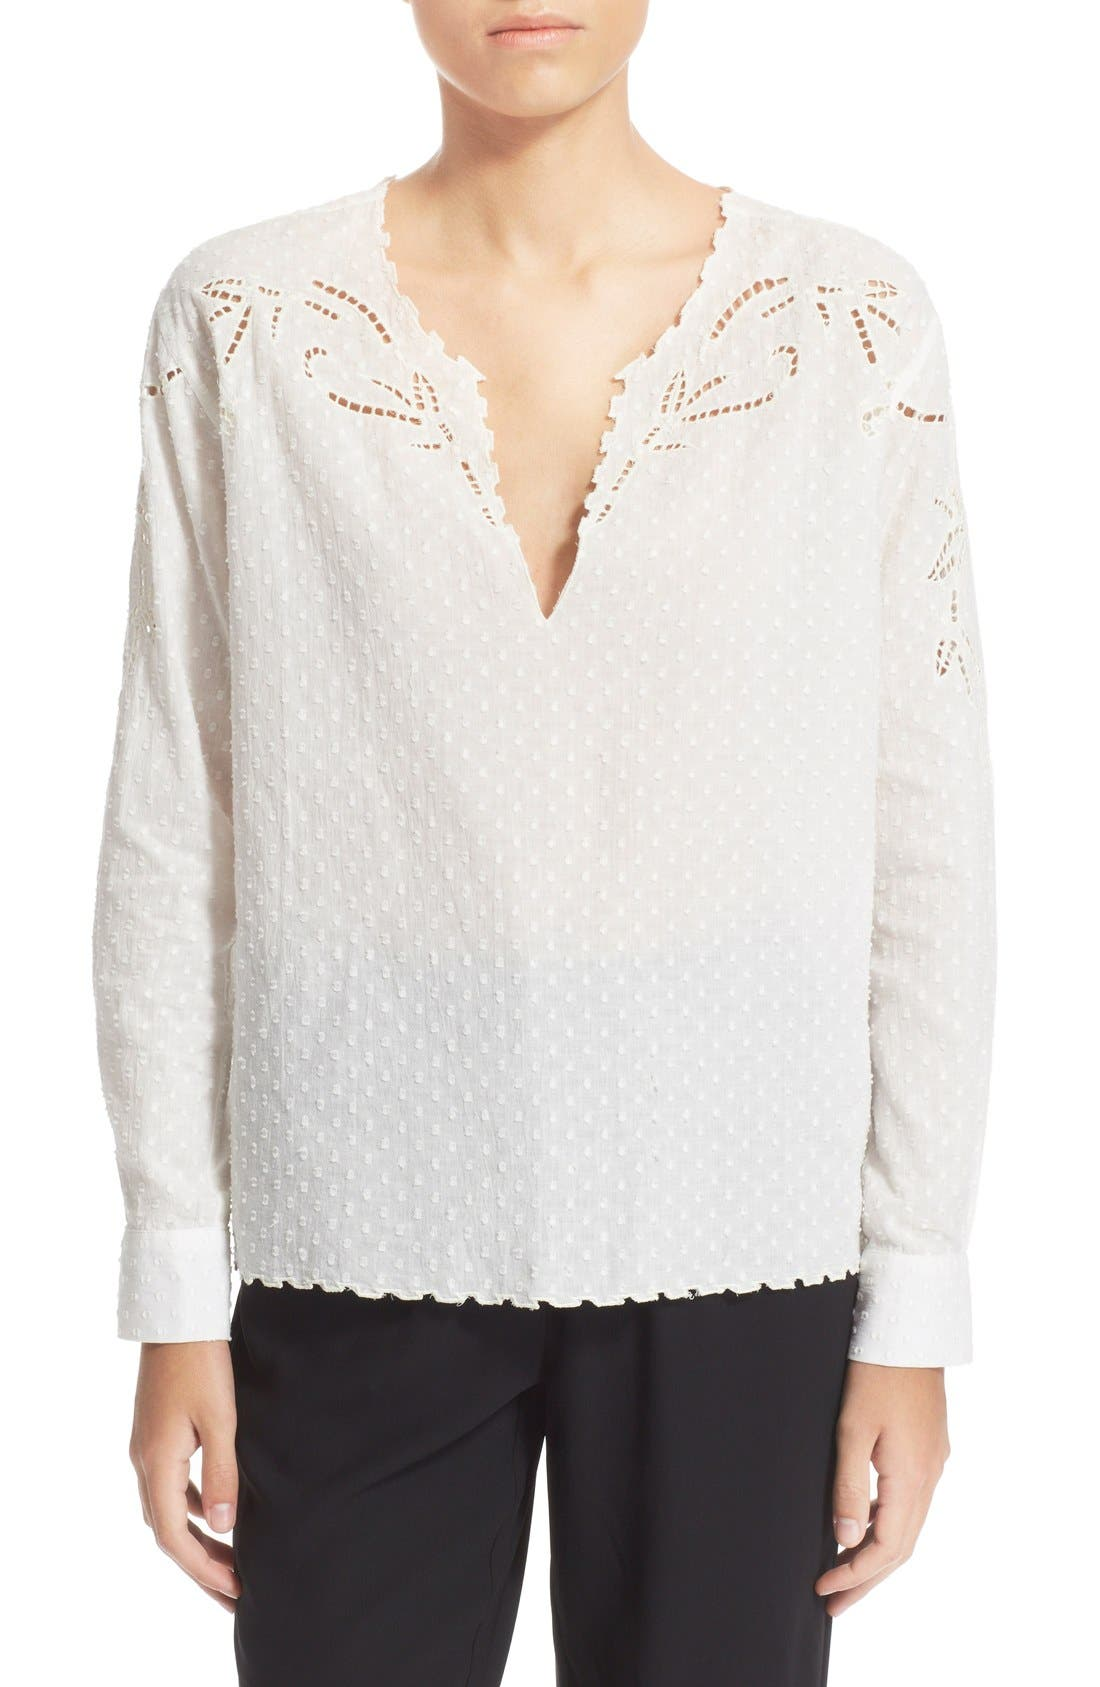 THE KOOPLES Broderie Anglasie Cotton Dobby Shirt, Main, color, 900